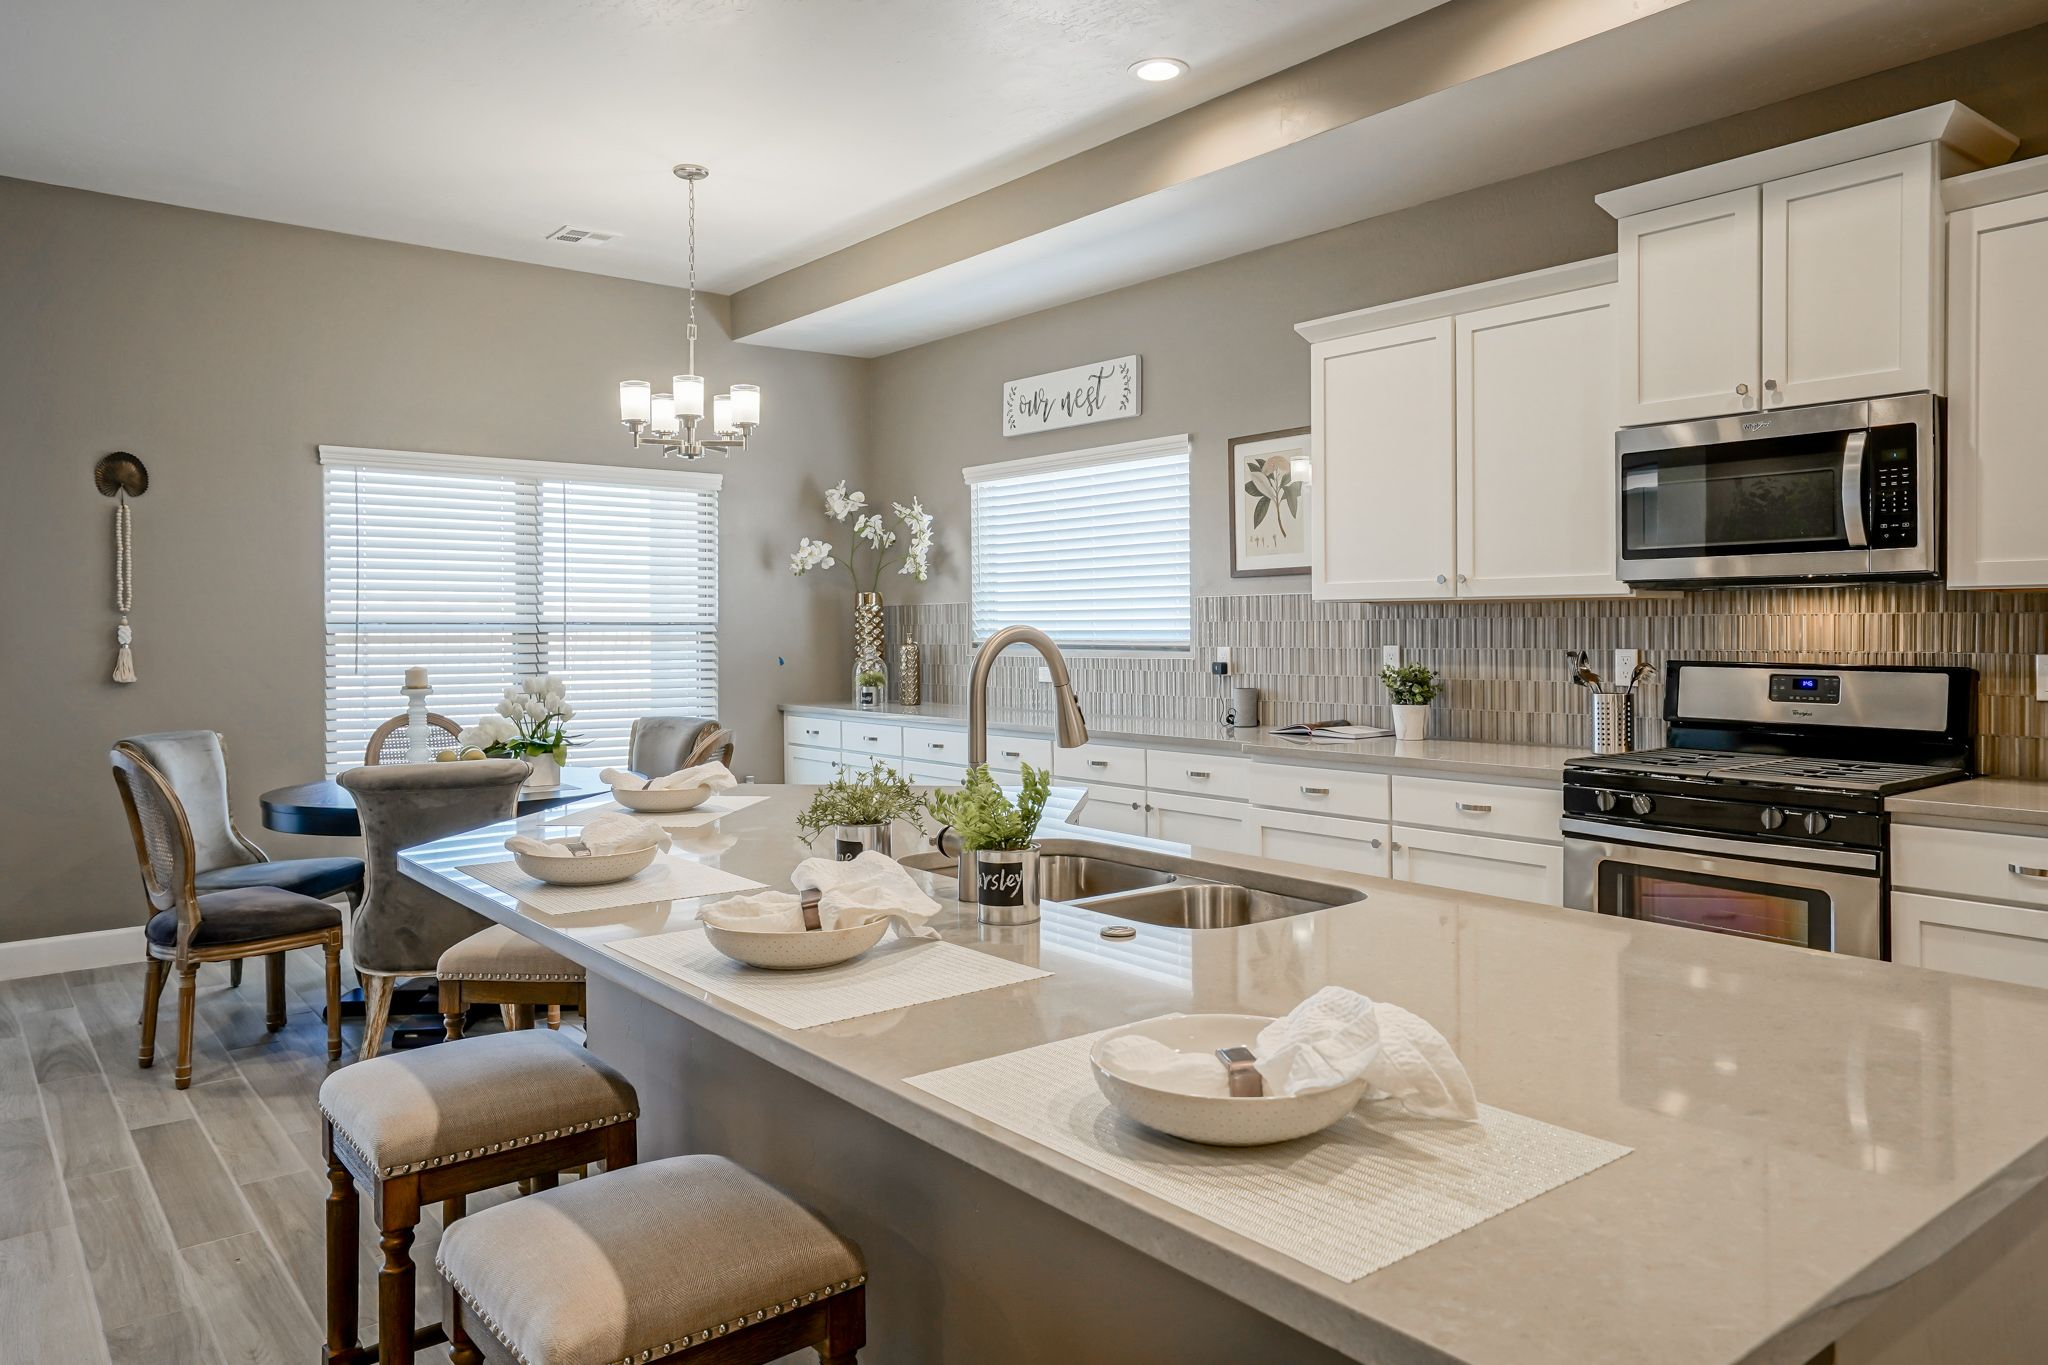 Kitchen featured in The Jane By Abrazo Homes in Albuquerque, NM